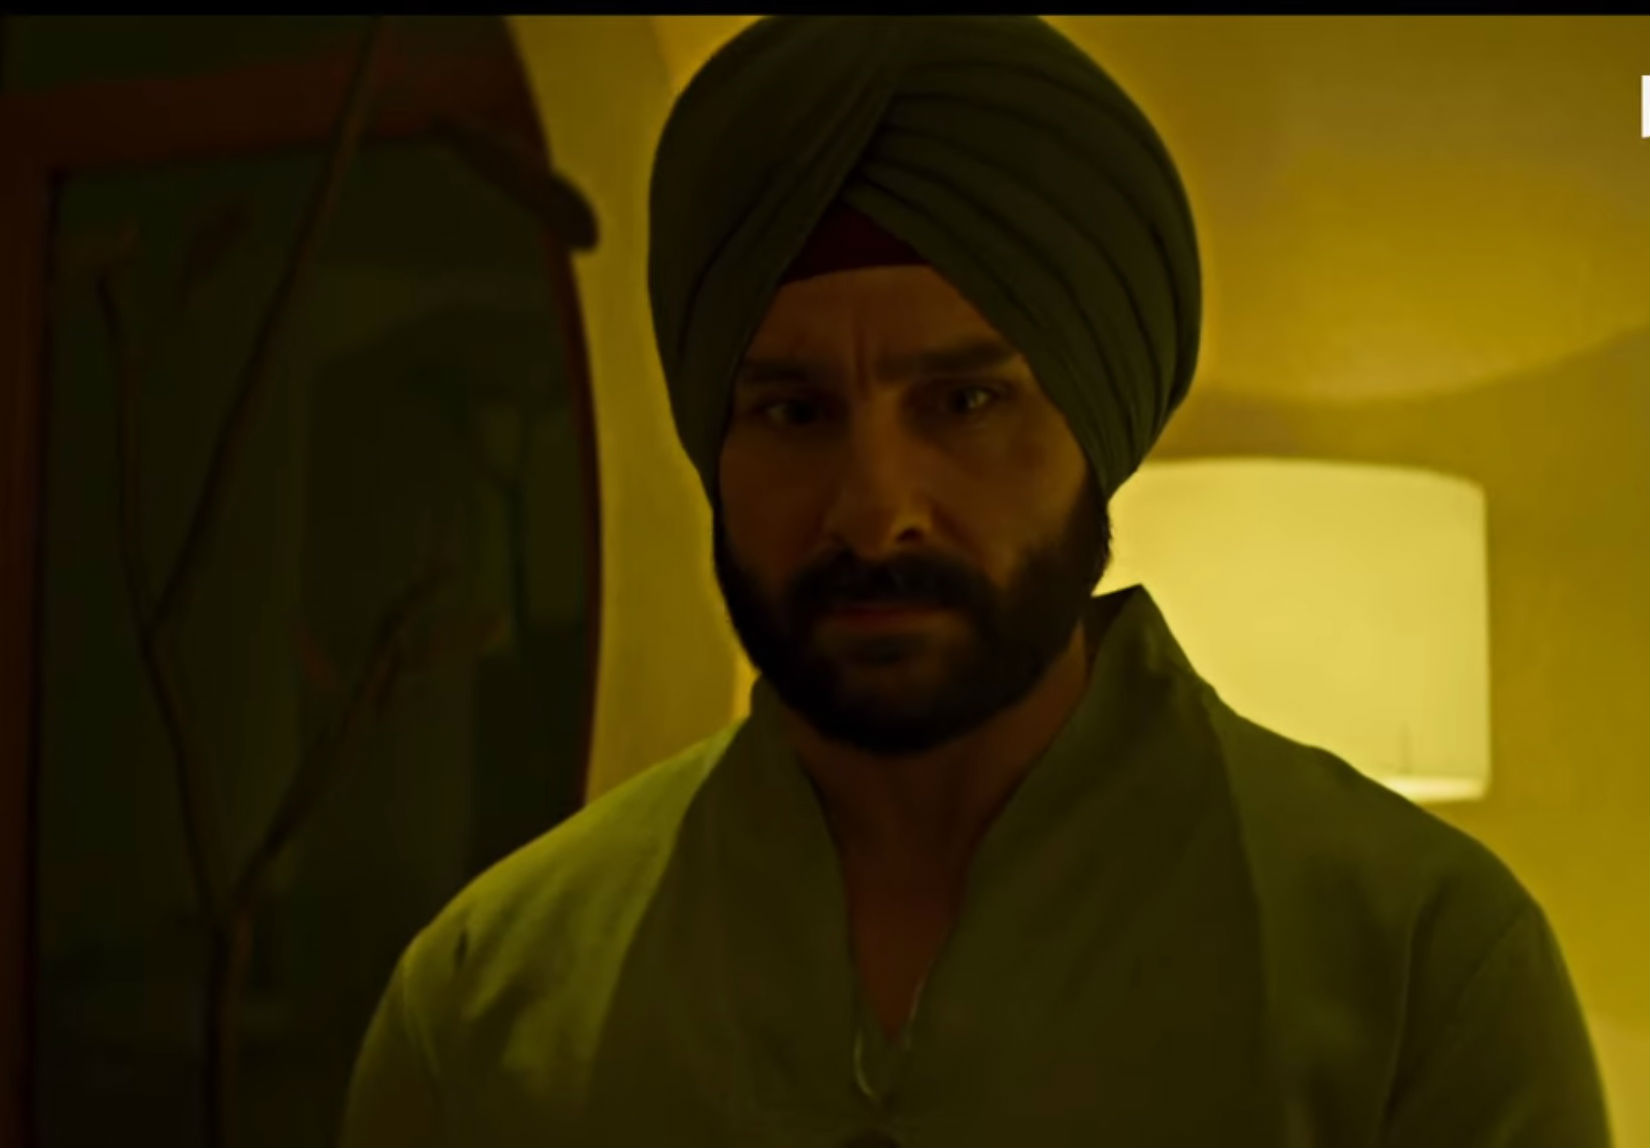 Saif Ali Khan Reveals How He Prepared For Sartaj Singh In Sacred Games 2; Says He Had To Lose Weight